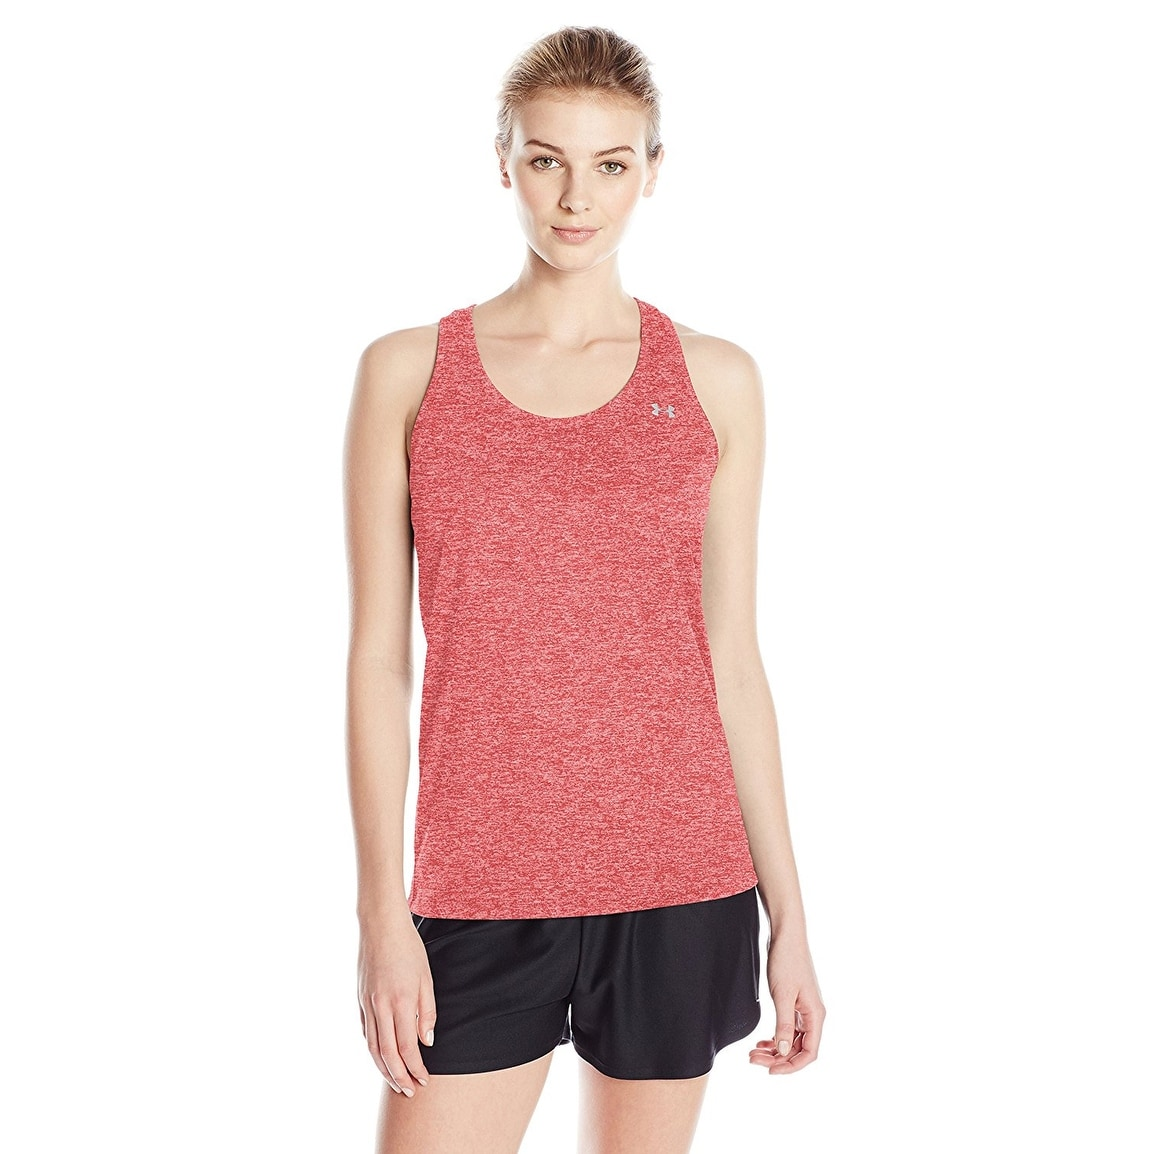 726170e92c75 Under Armour Athletic Clothing